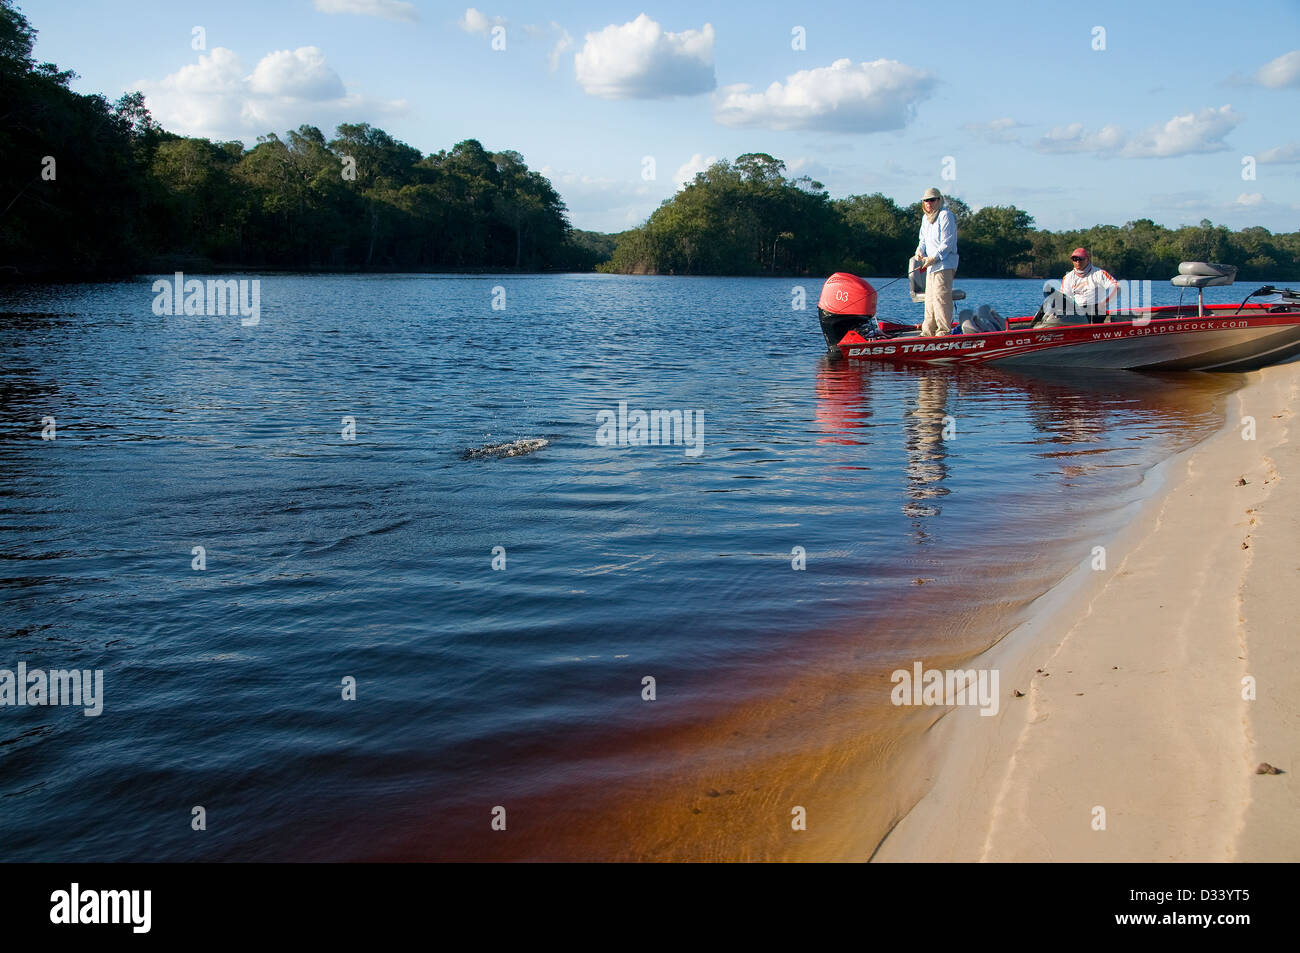 An angler fishes a topwater lure for peacock bass off a sandbar in the Rio Negro in Brazil's Amazon Basin. - Stock Image